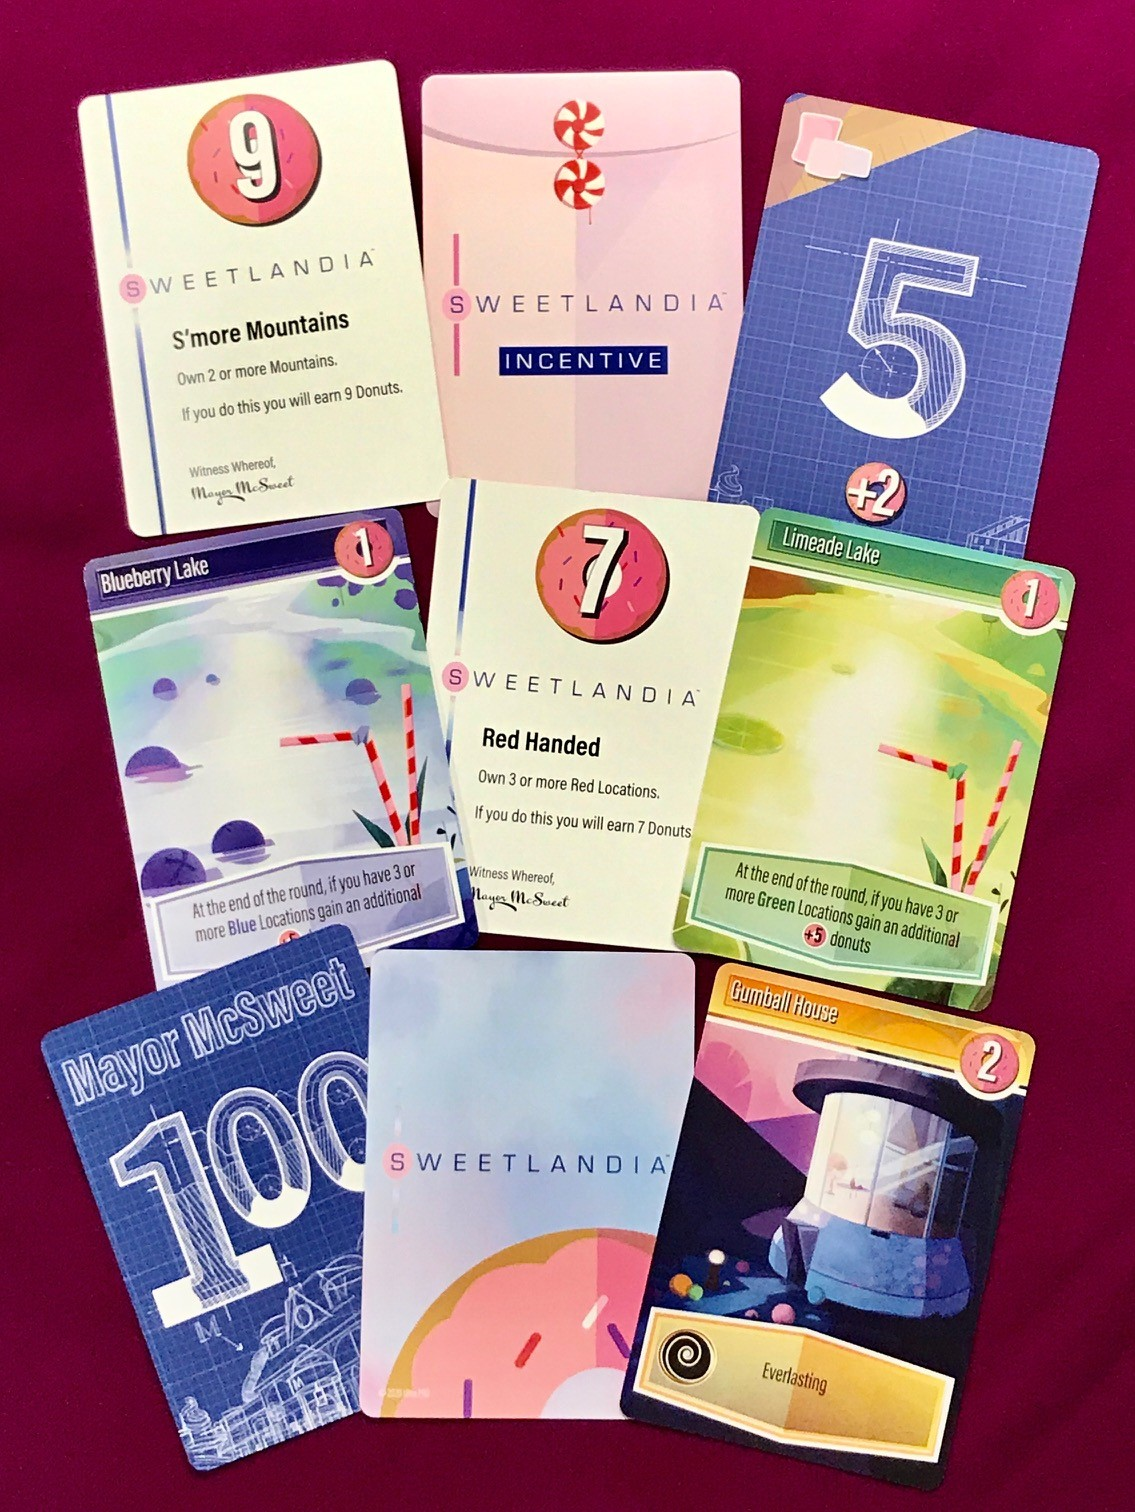 random assortment of cards from sweetlandia showing different locations, incentives, and bidding cards